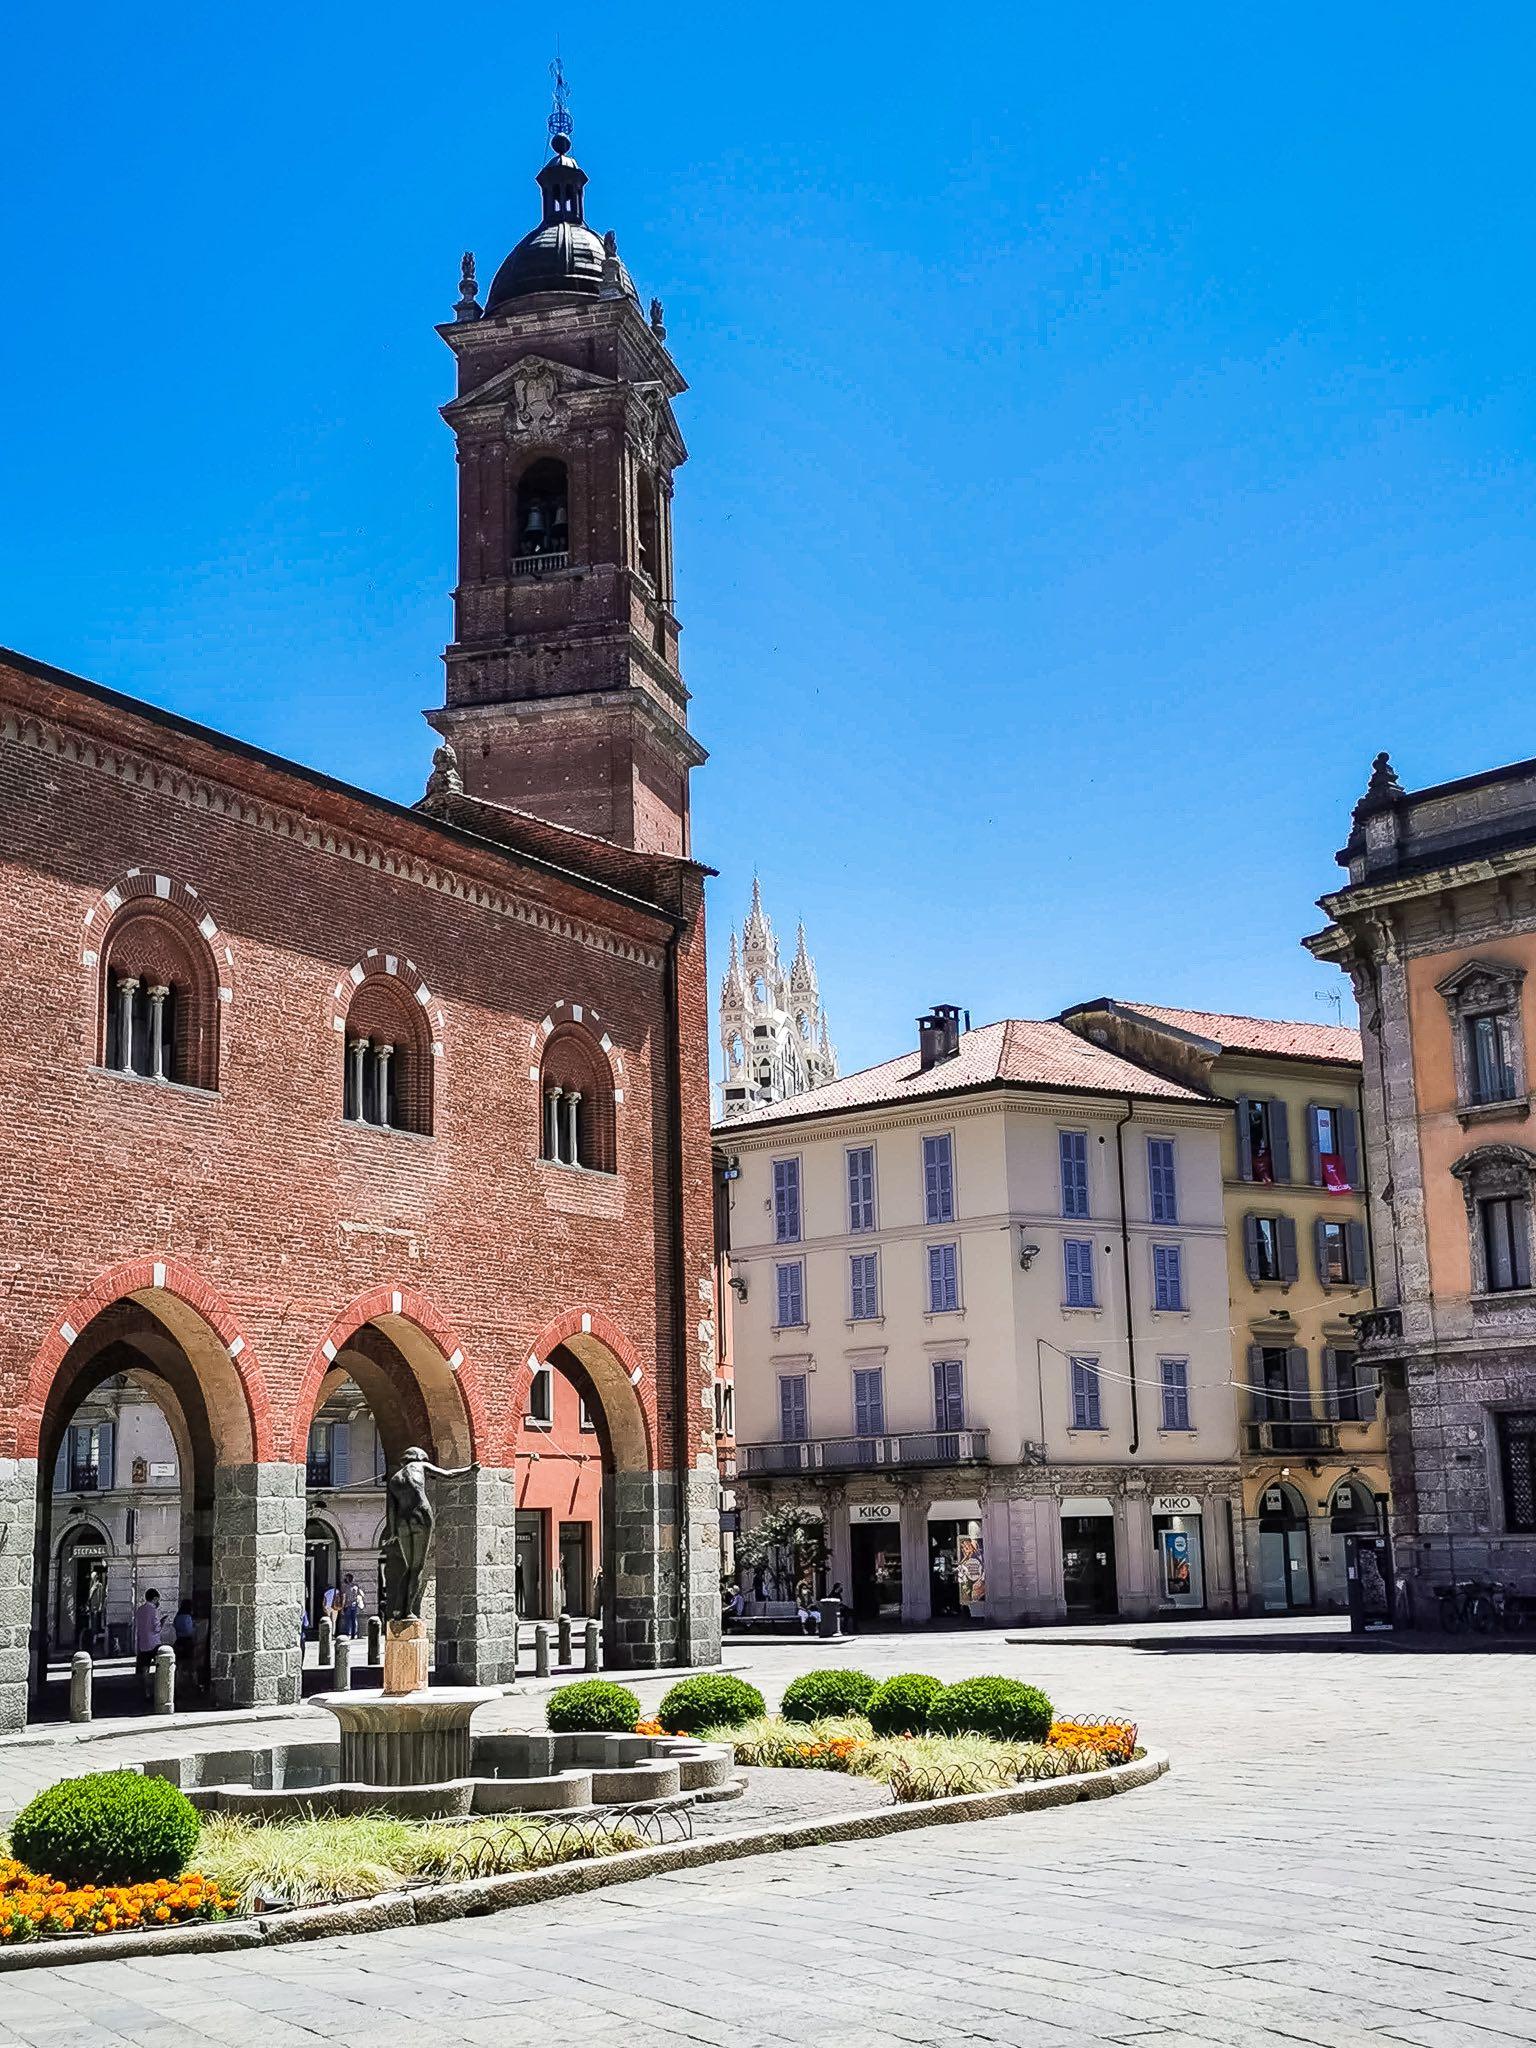 The Arengario, the old seat of the locat town hall, in Monza historic center